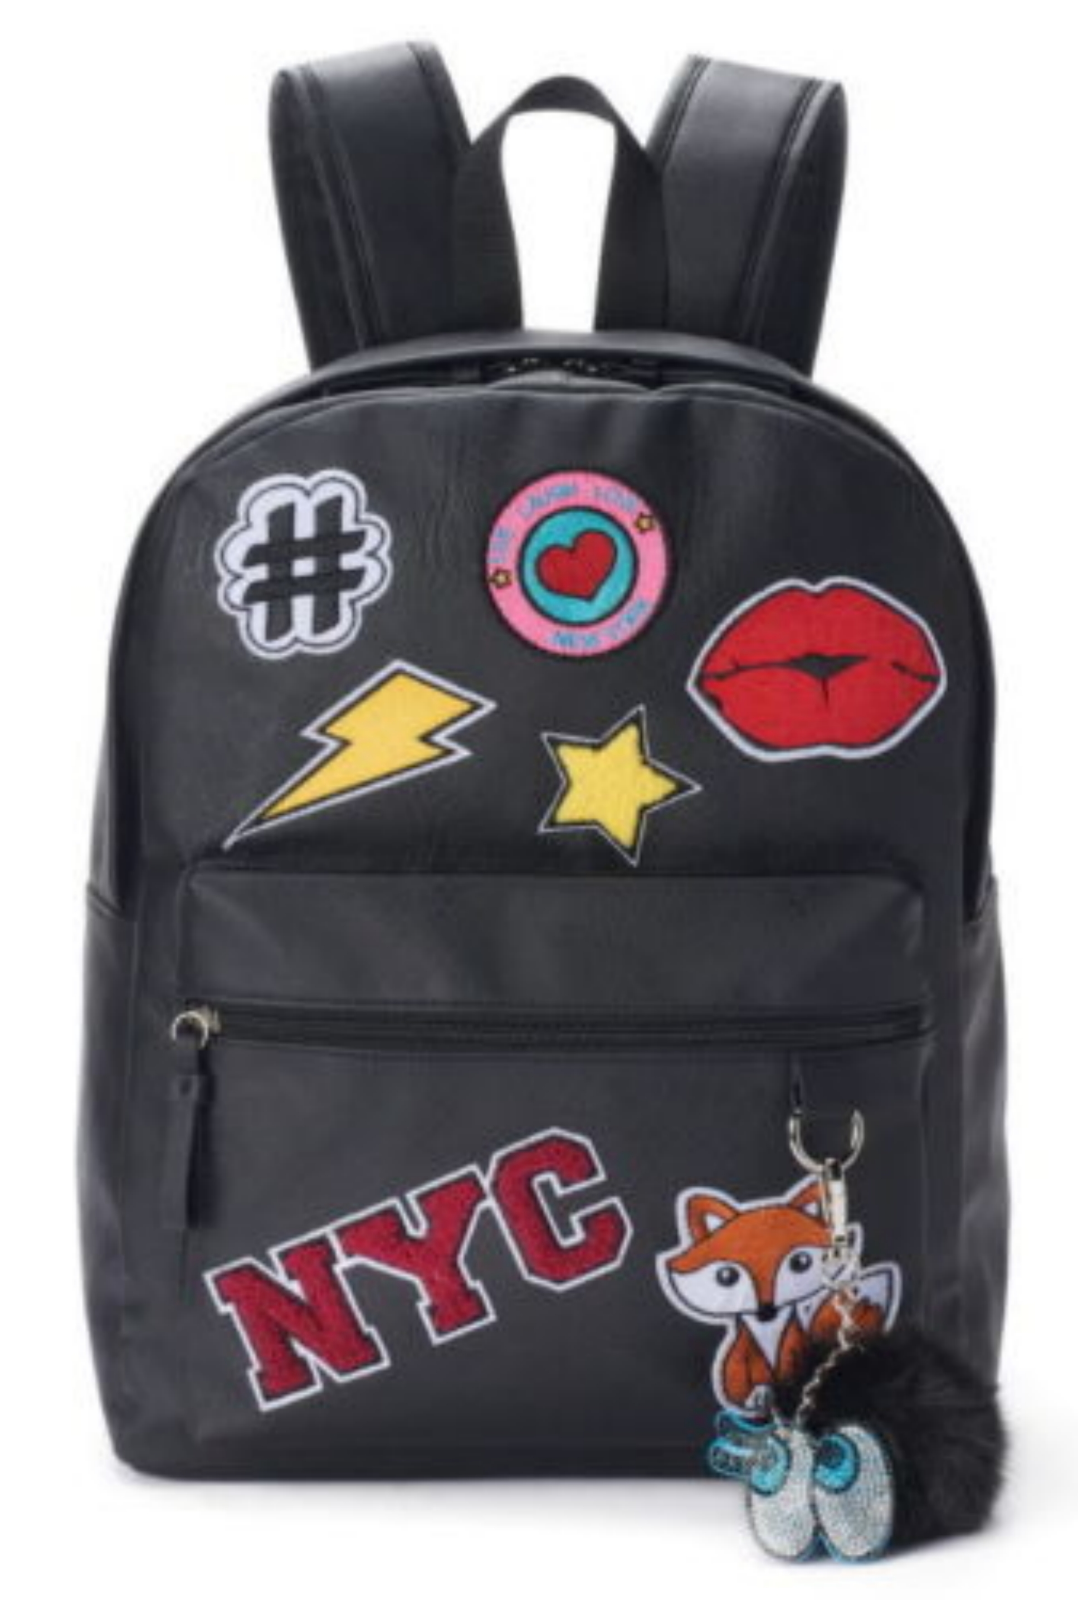 $60 BACKPACK Candies Black NYC Faux Leather/Fur Patches #Fox-Pom Keychain Travel